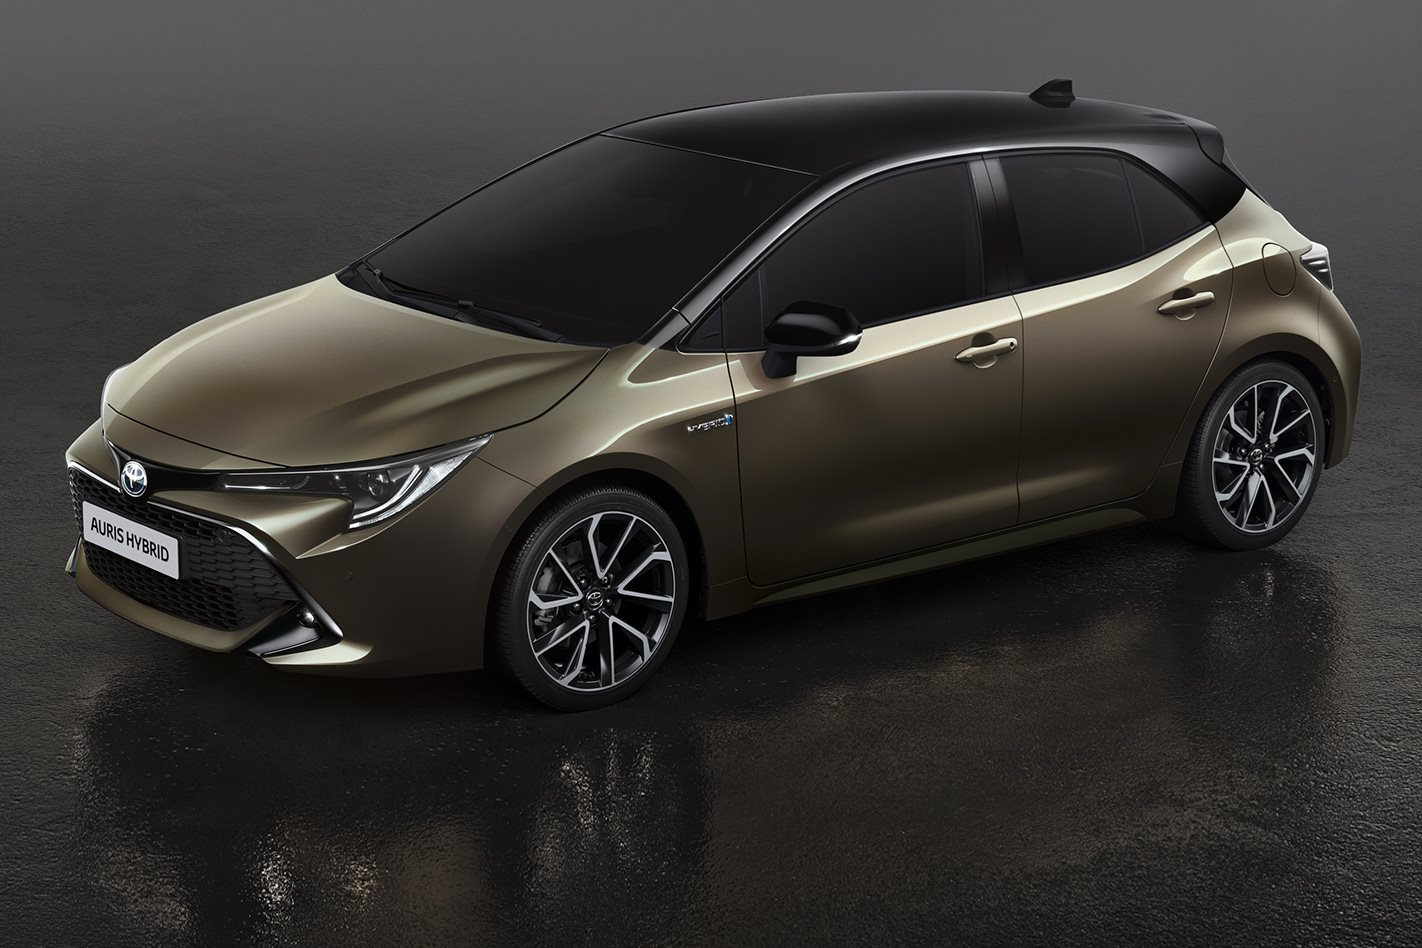 2018 Geneva Motor Show: New Toyota Corolla revealed